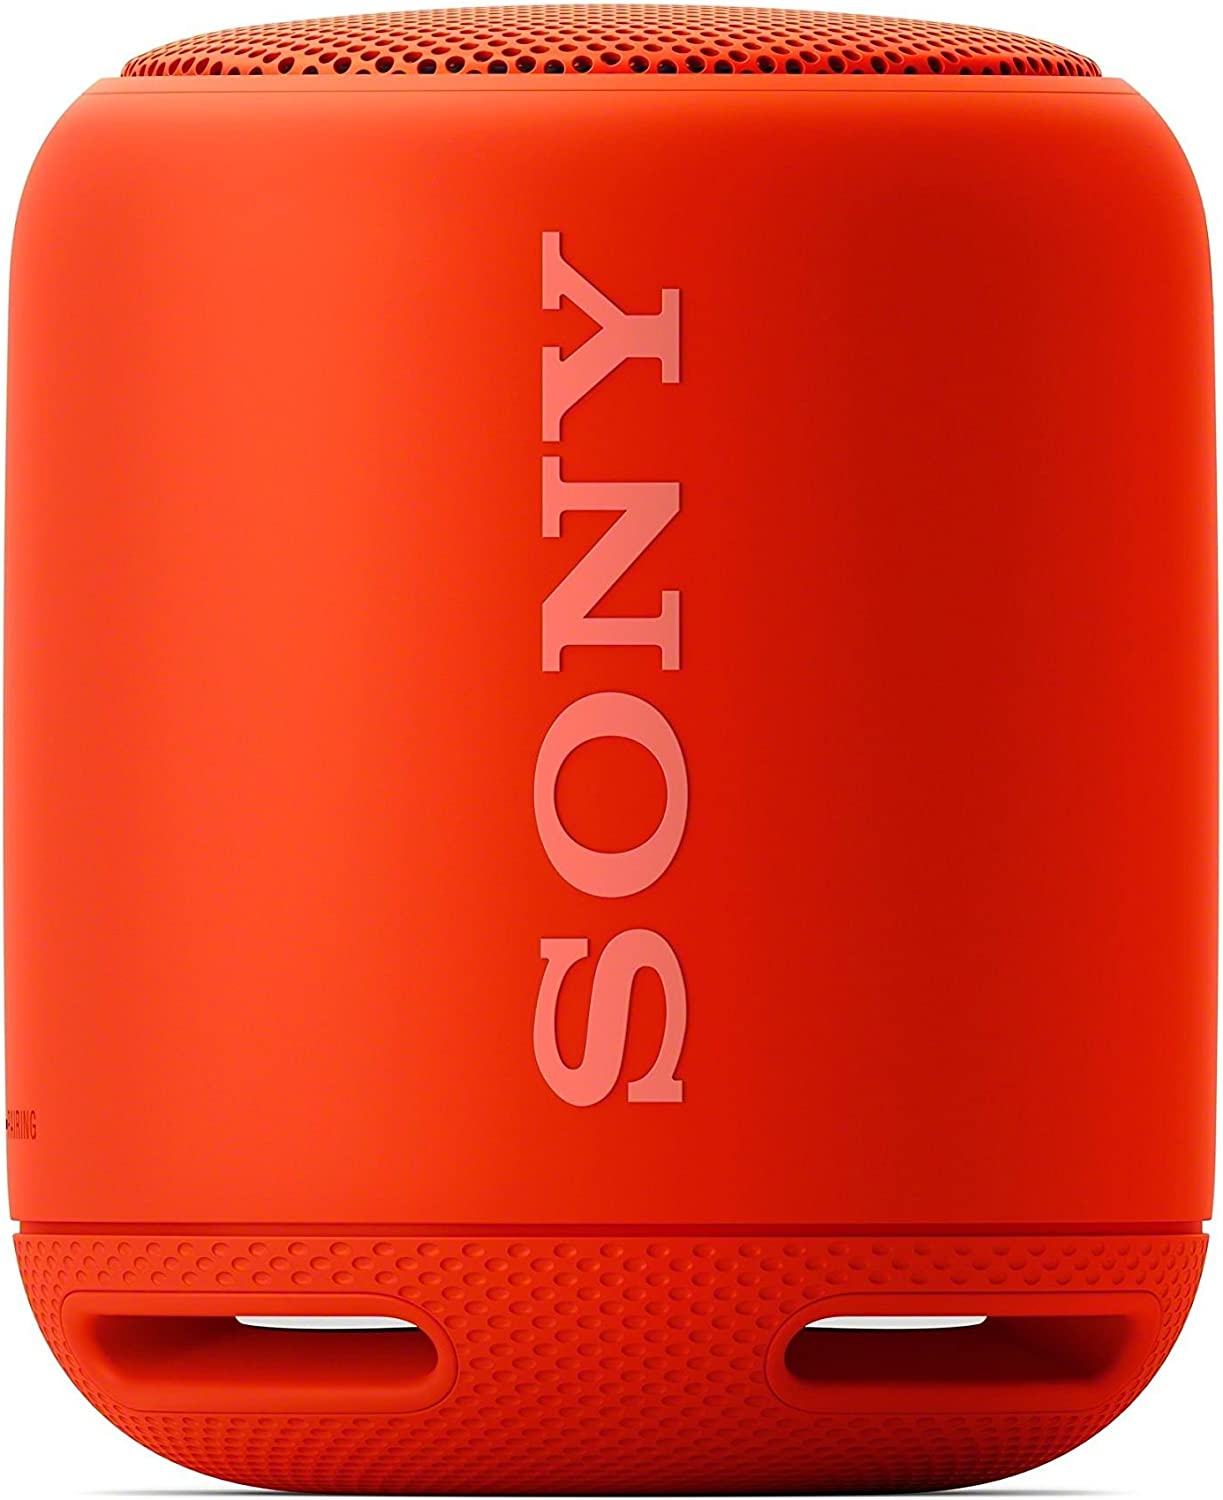 Sony XB10 Portable Wireless Speaker with Bluetooth, Red